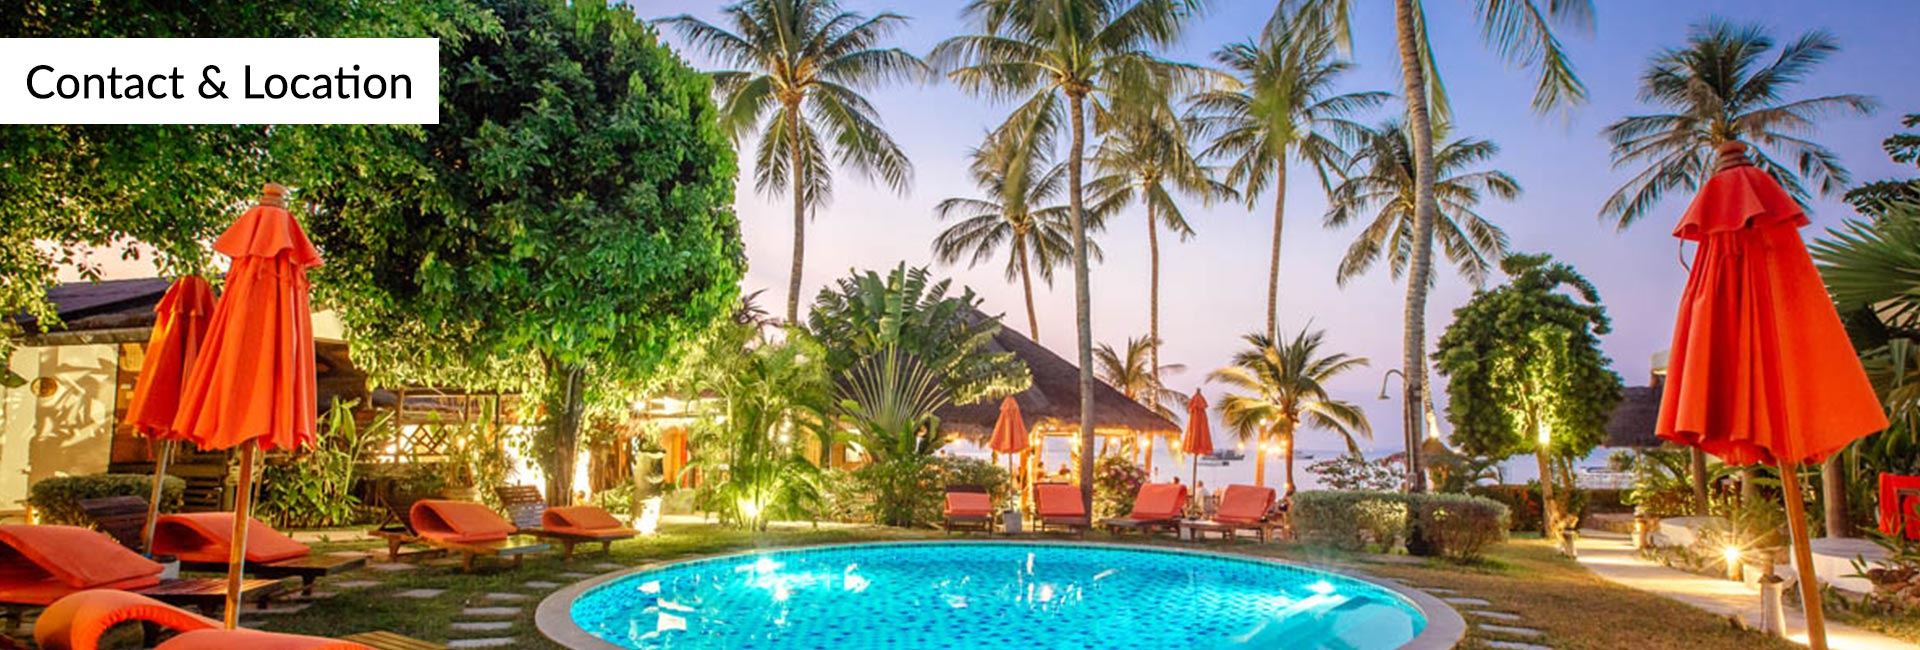 Secret Garden Beach Resort & Restaurant, Koh Samui, Thailand